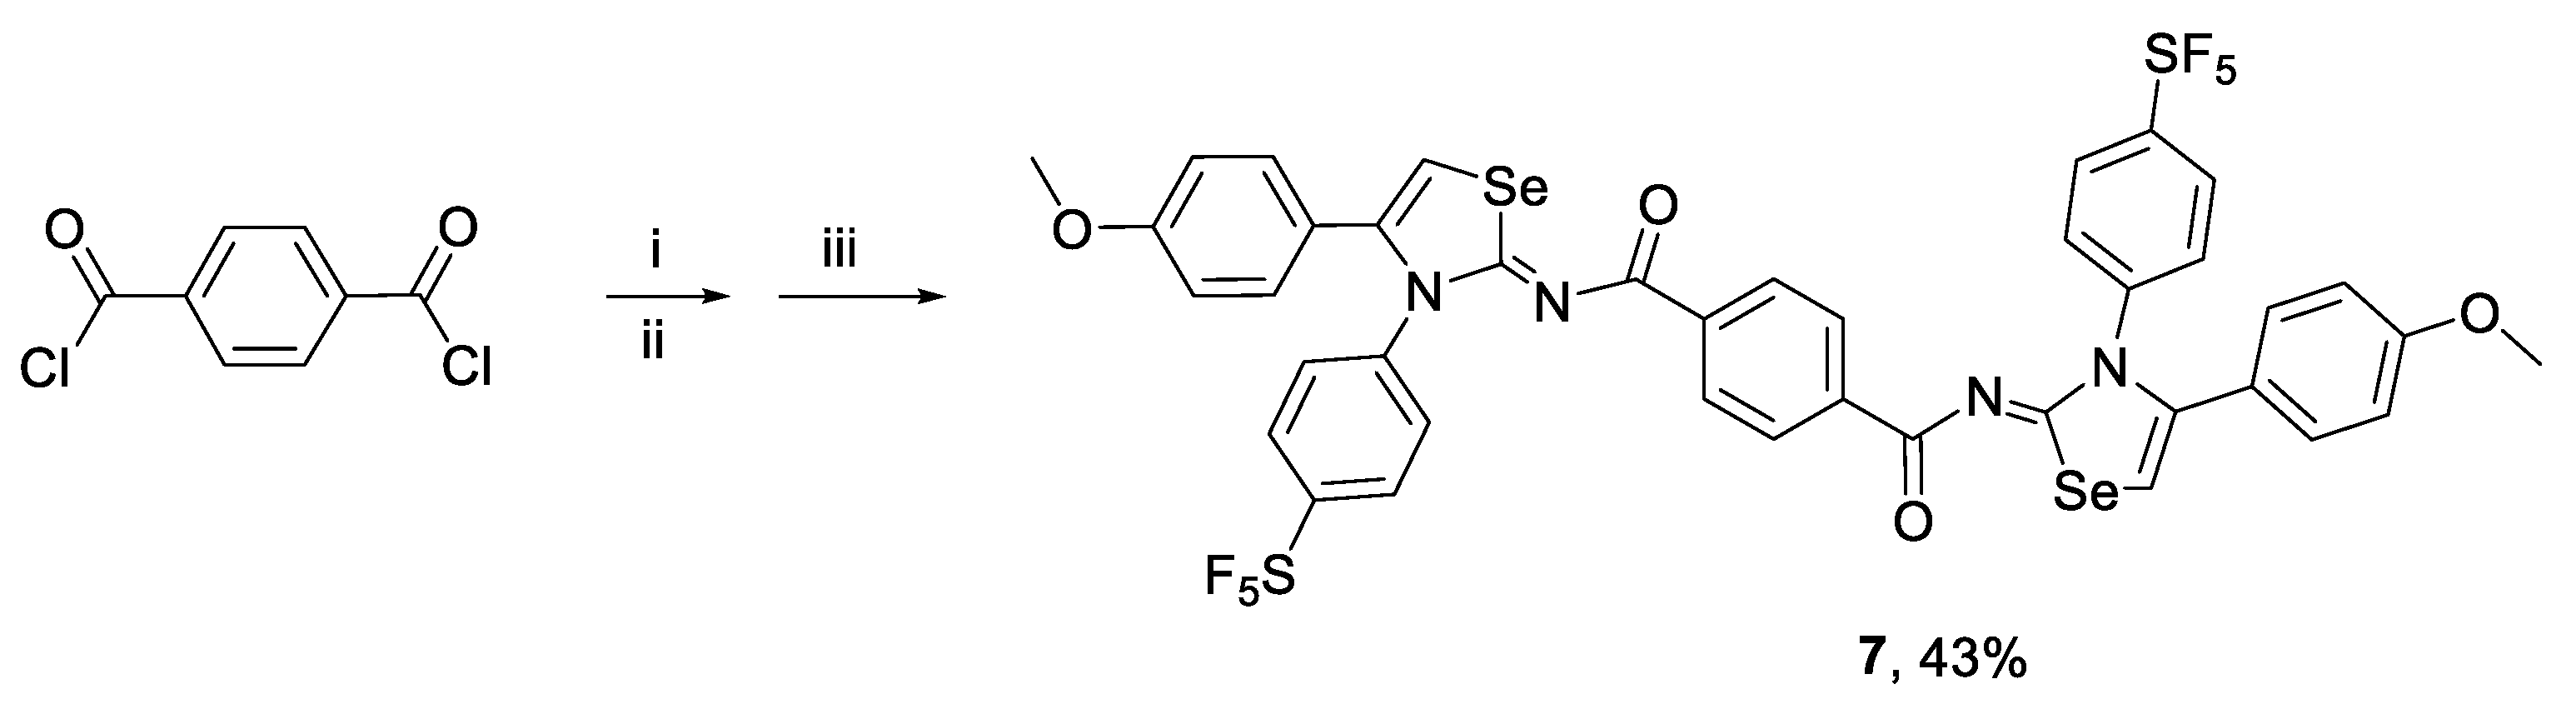 Molecules 23 02143 sch003